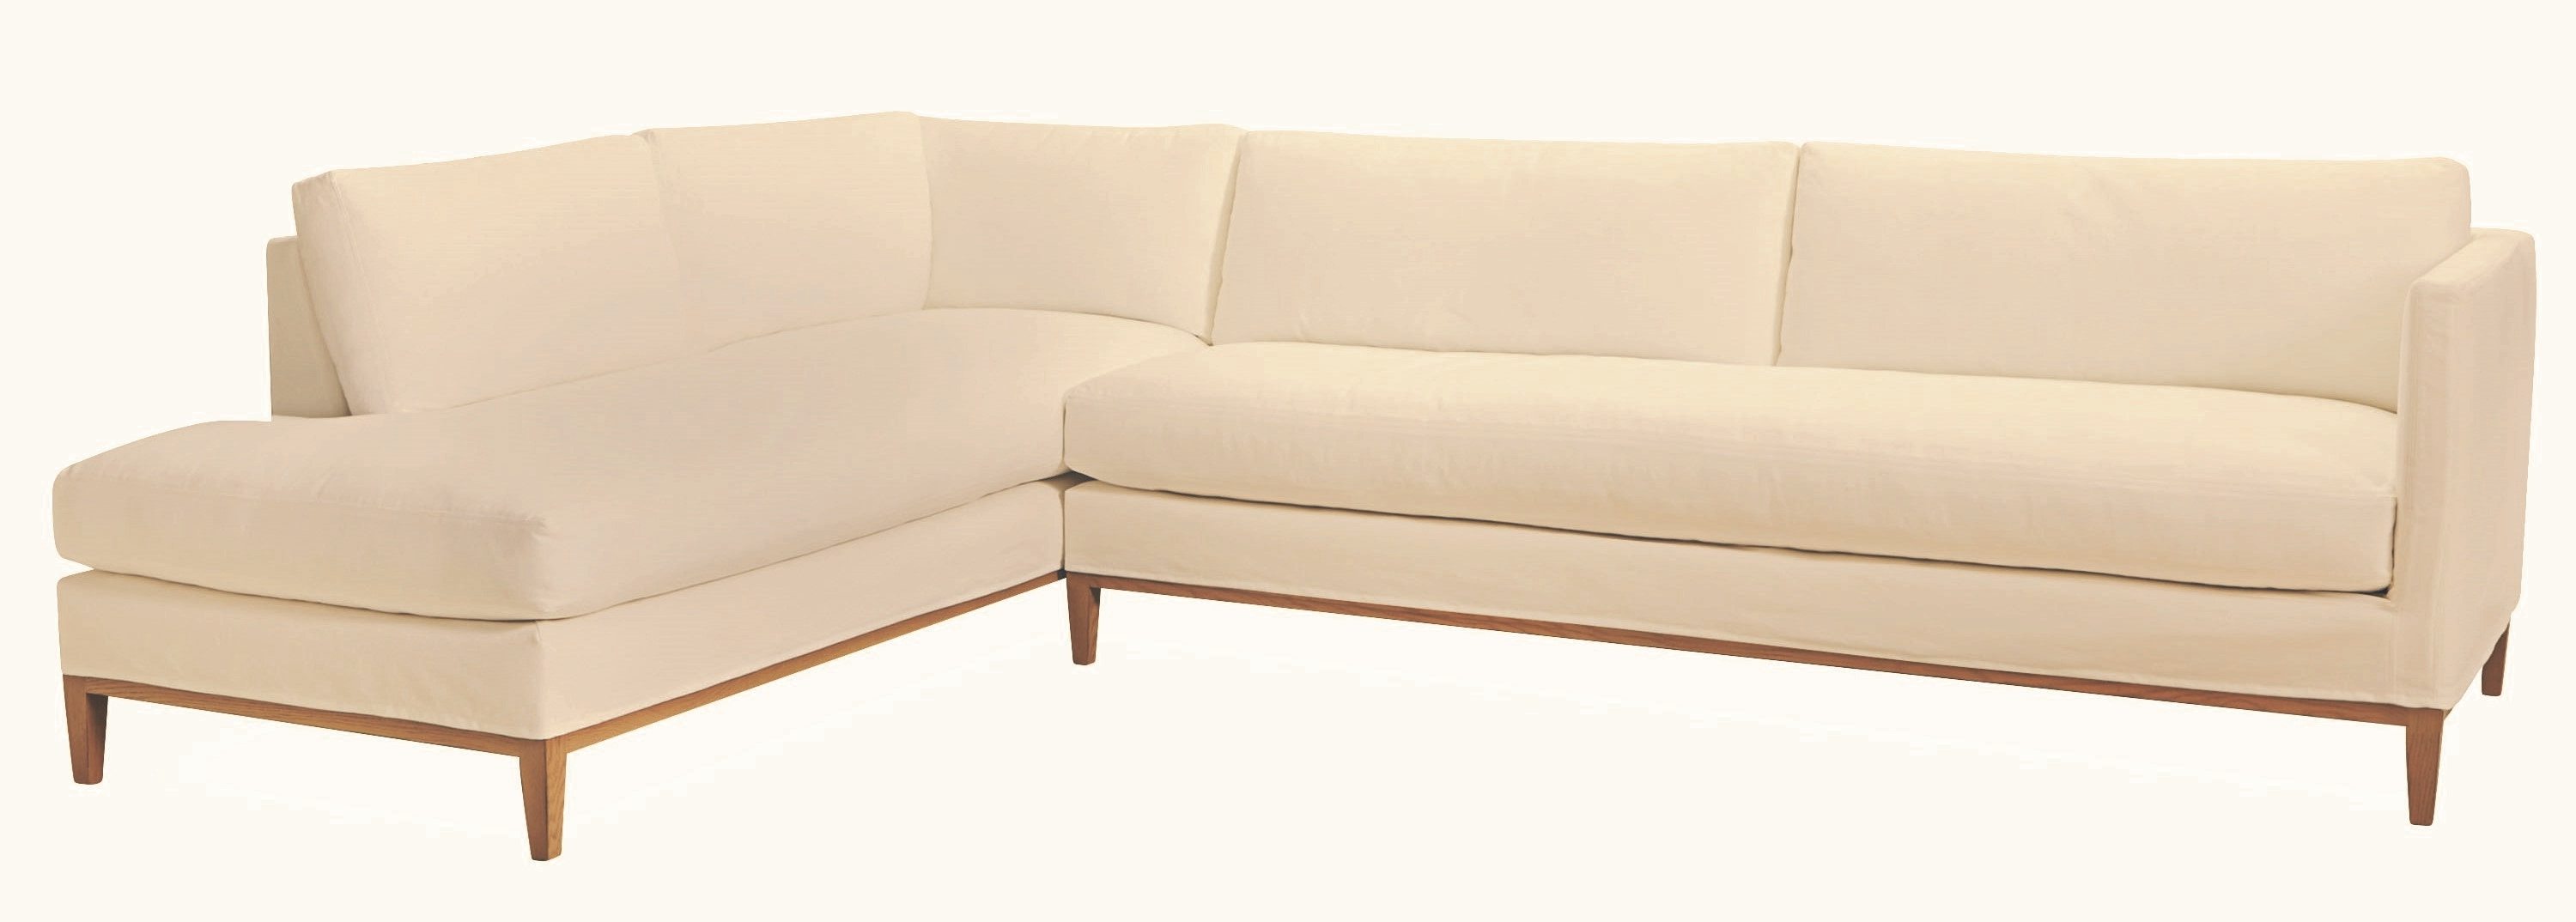 Lee Industries Slipcovered One Arm Sofa C3583 18RF